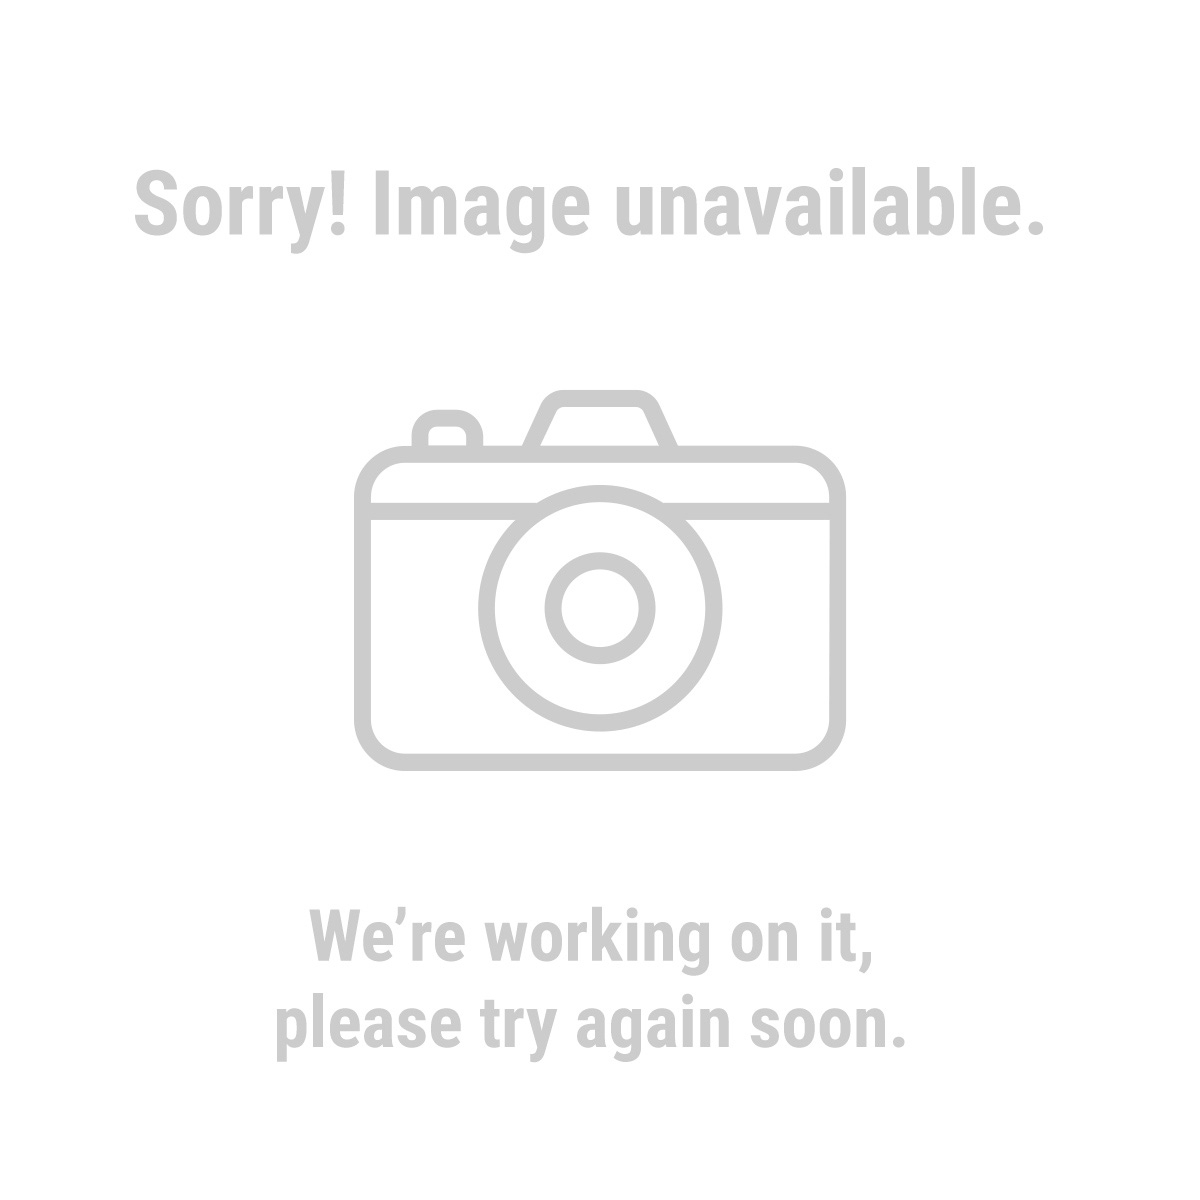 HARDY 99692 PVC with Dipped Sand Gloves, Large